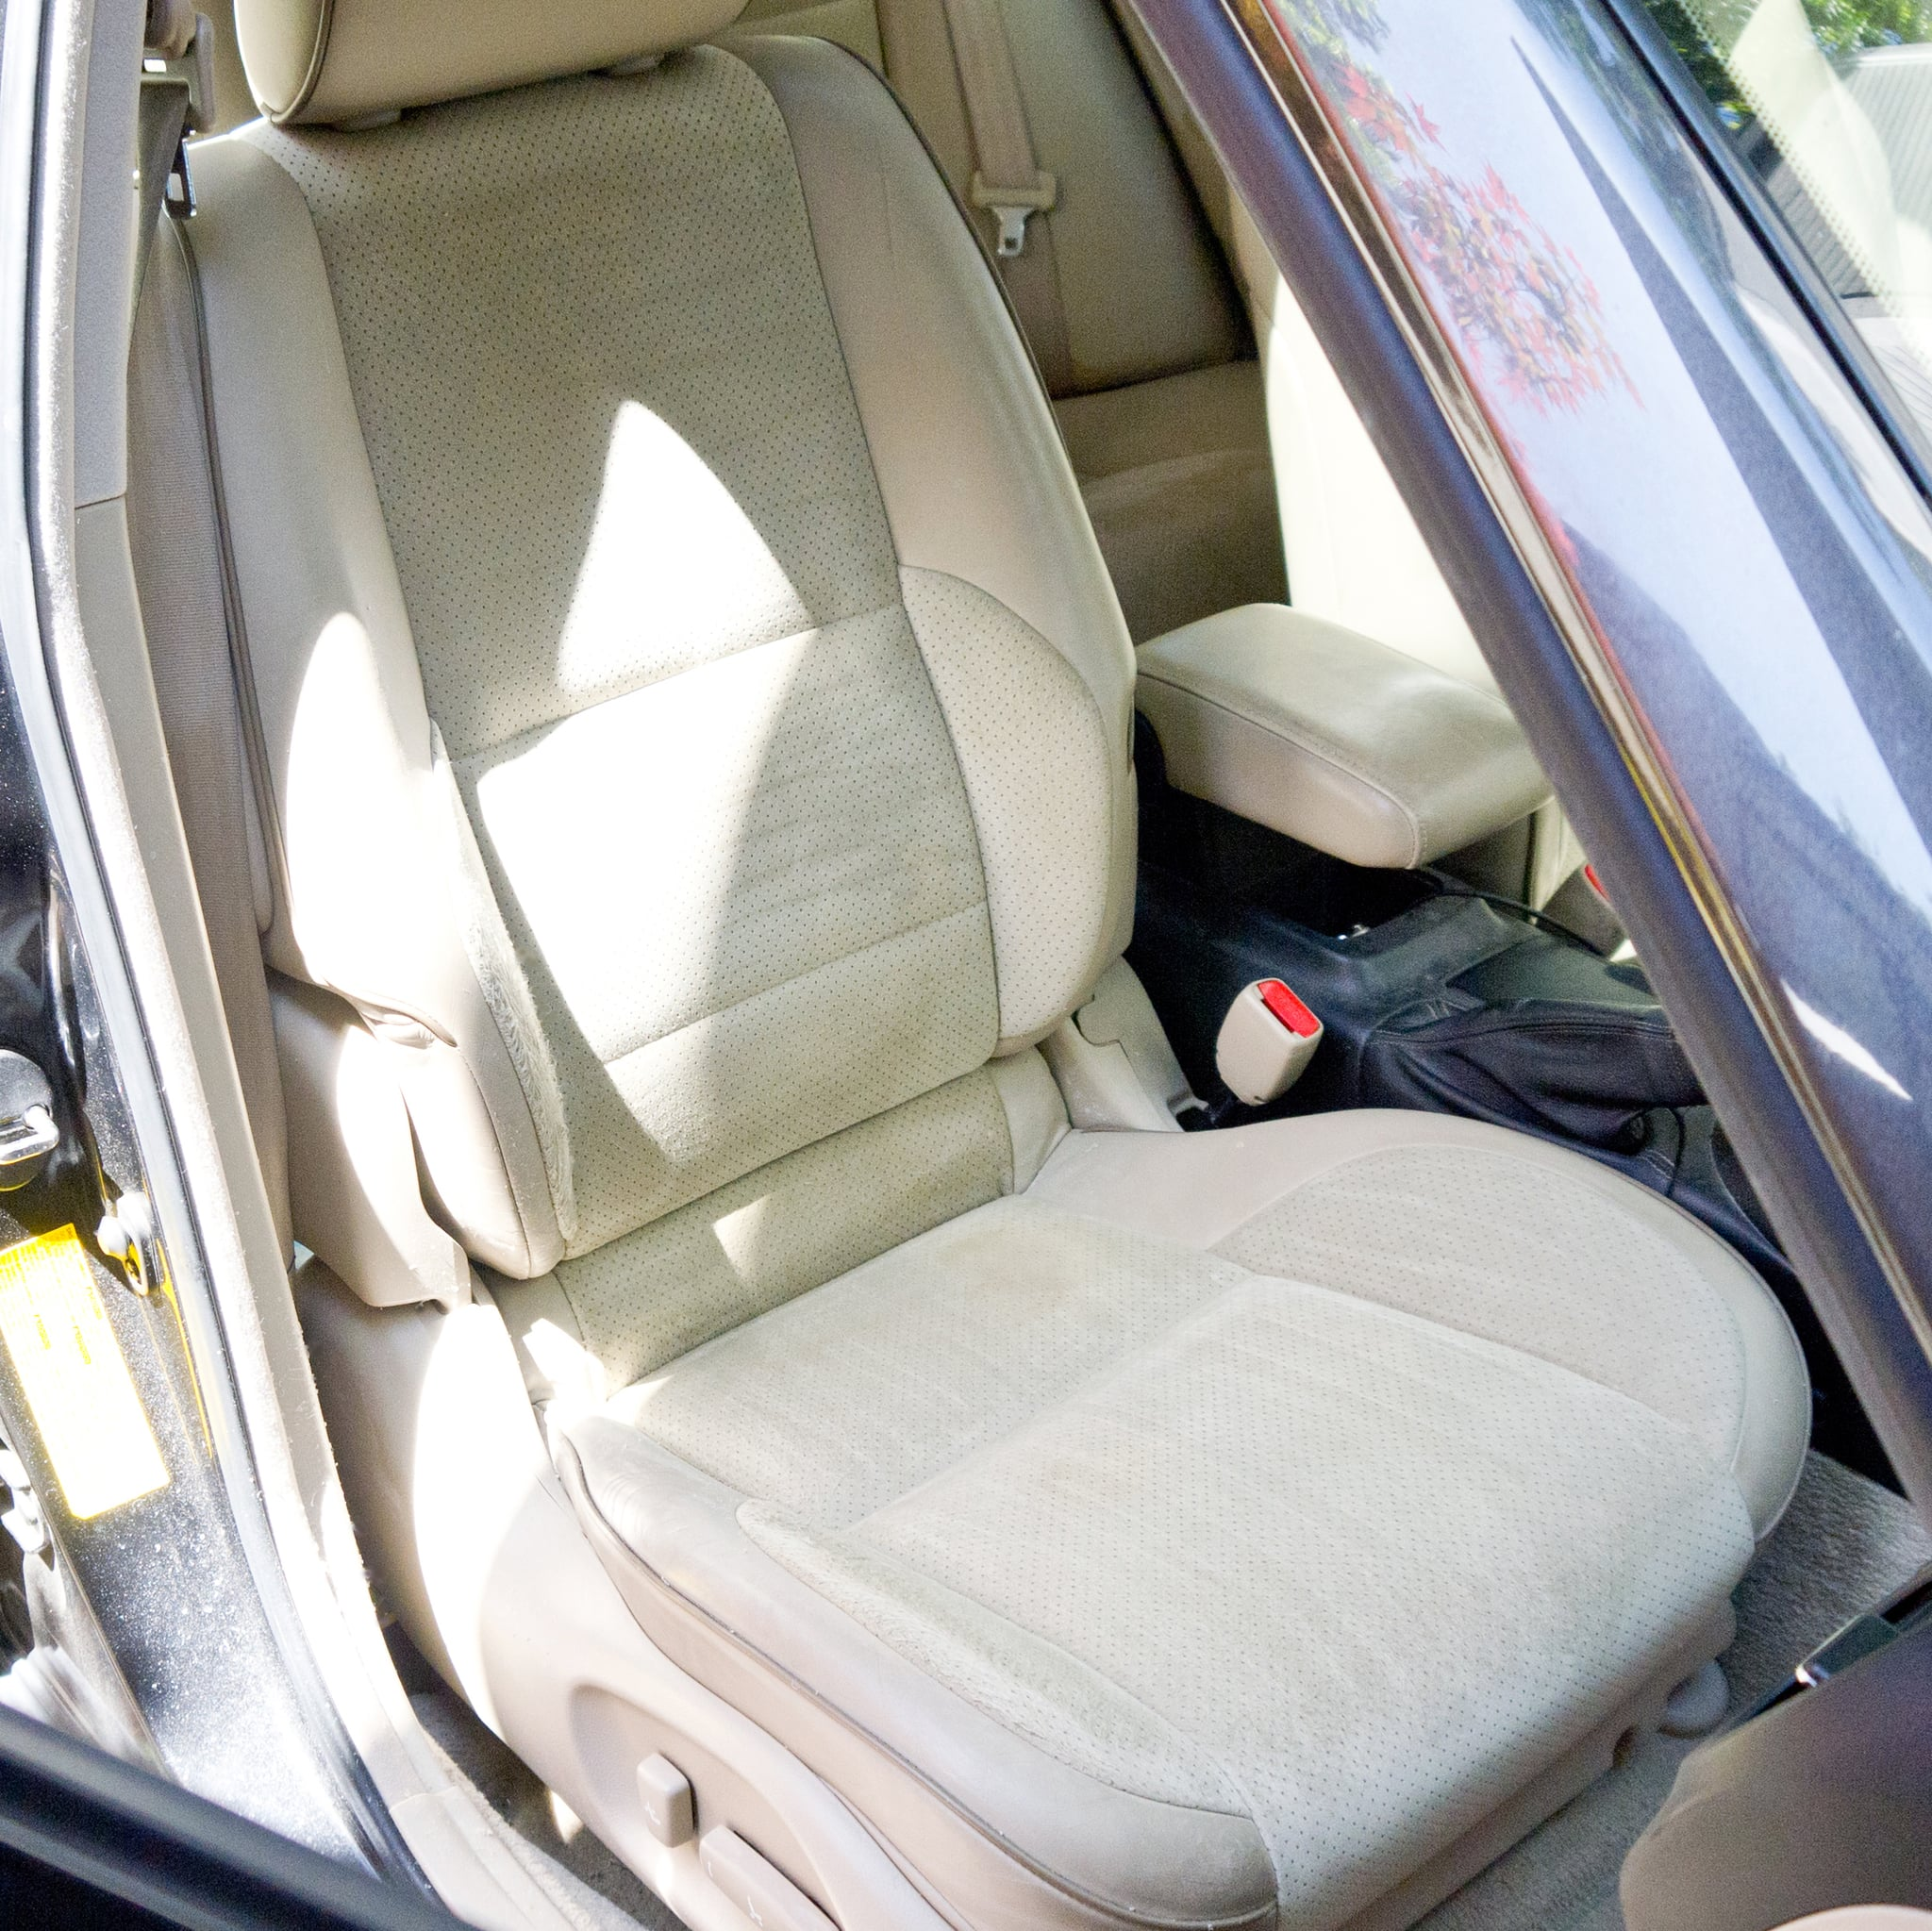 interior shampoo car a room creative decoration services design simple cleaning wonderful ideas on source seat wash